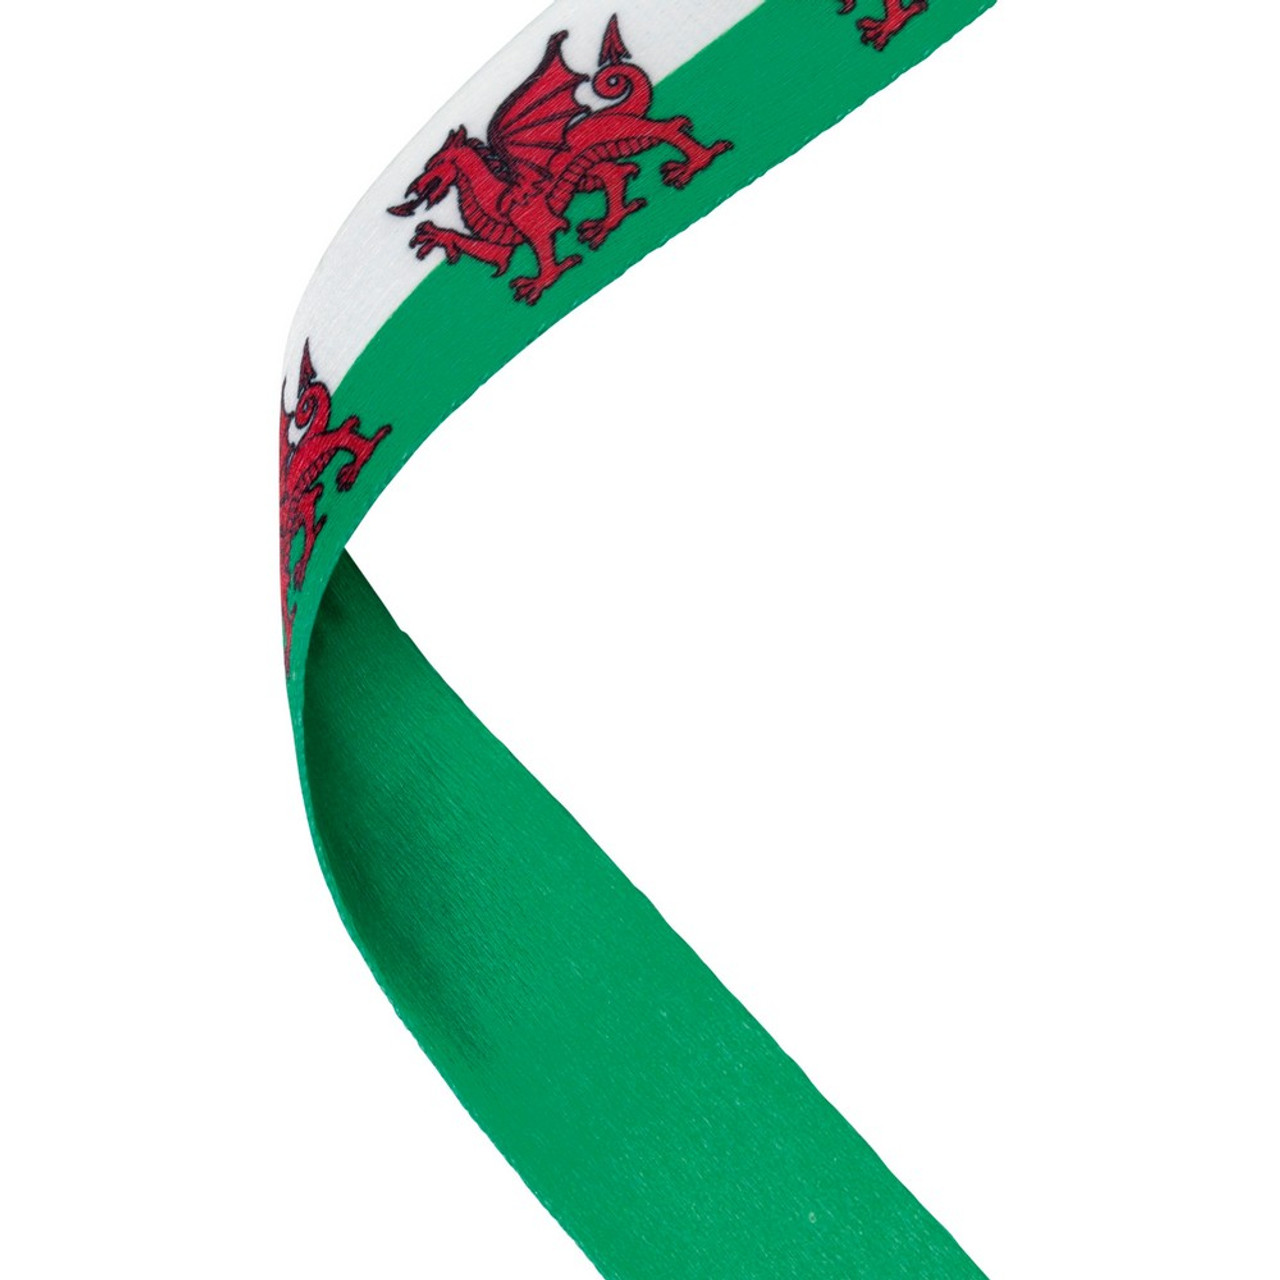 Wales Welsh Dragon Medal Ribbon at 1stPlace4Trophies